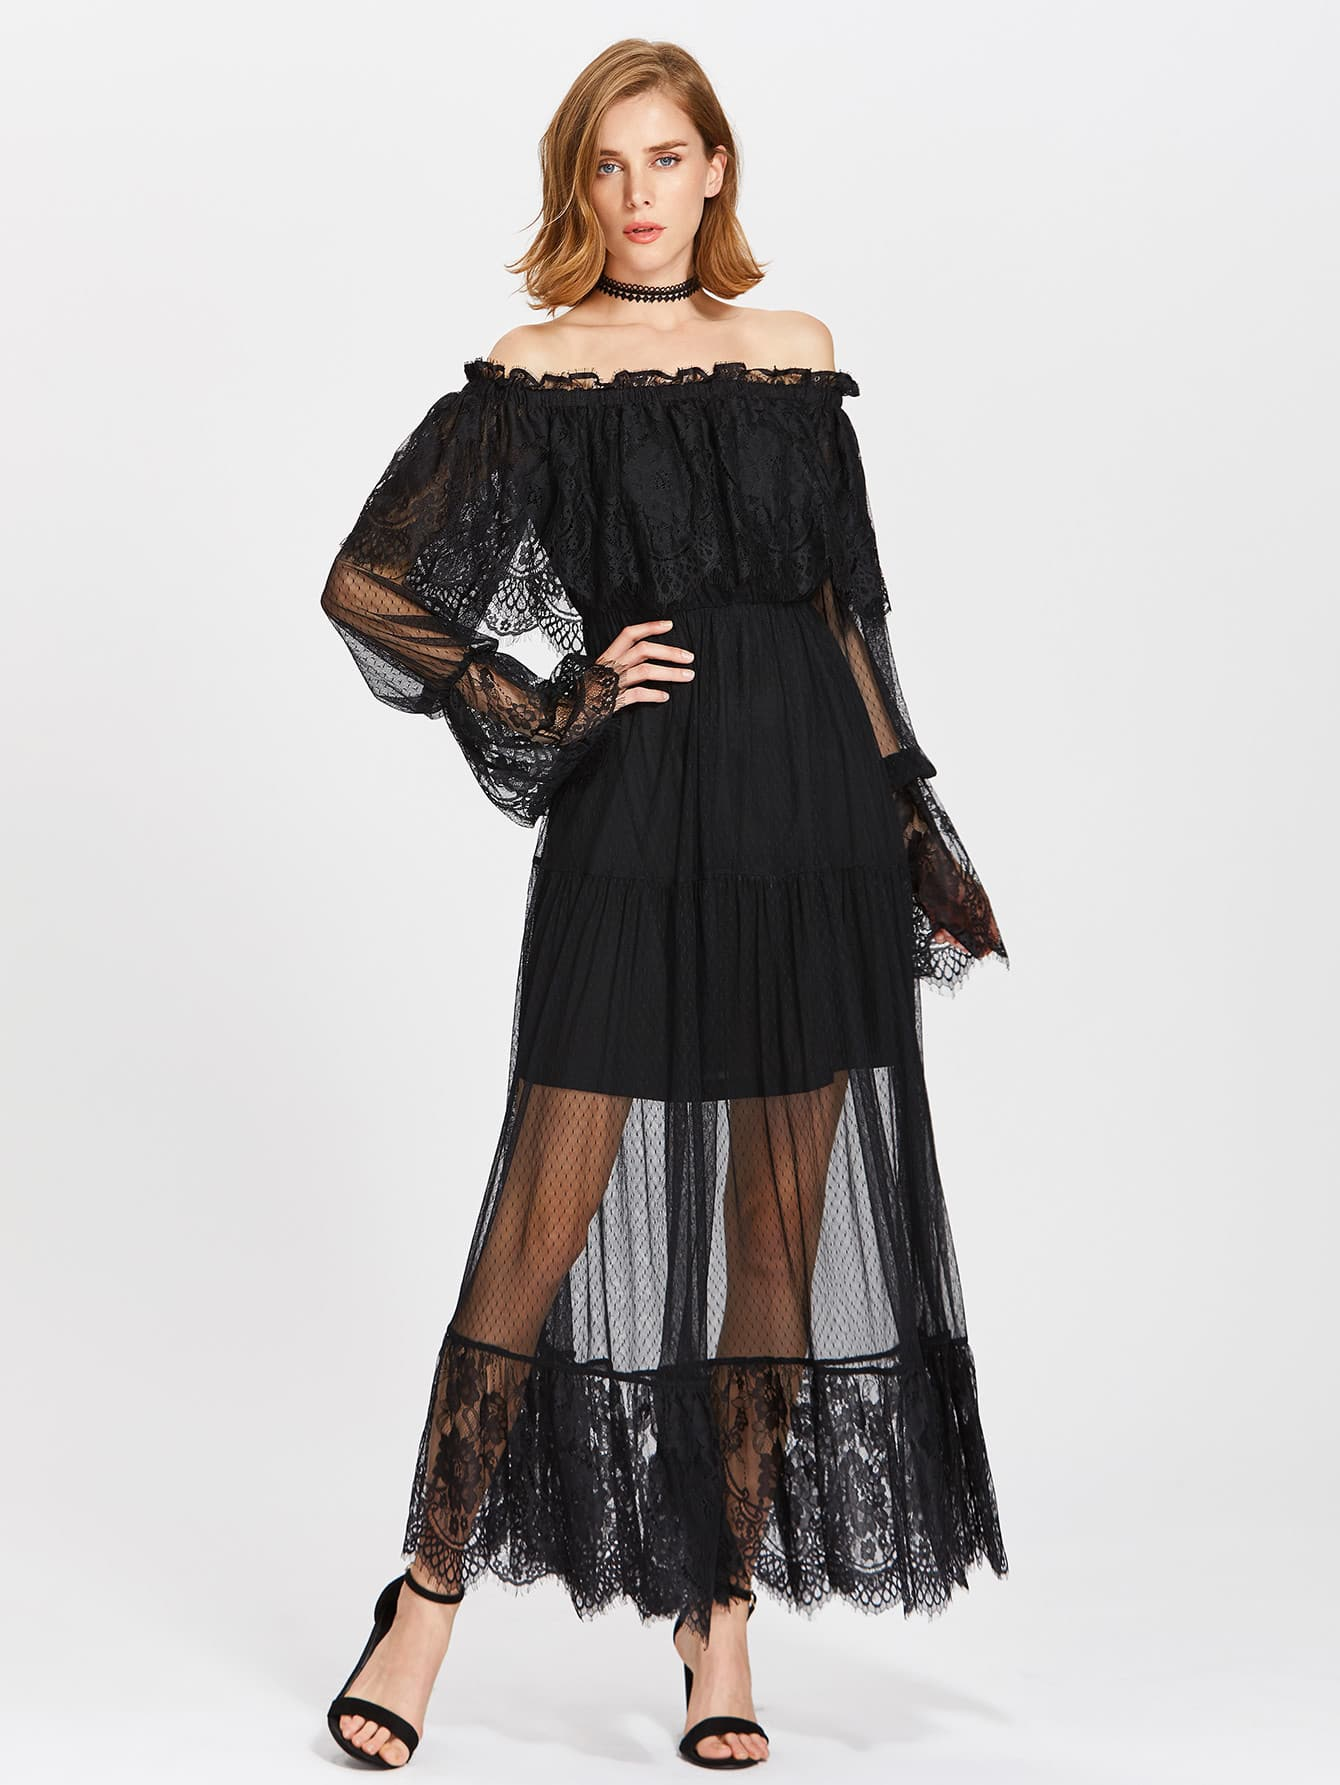 Frill Off Shoulder Lace Overlay Tiered Dress dress170627709